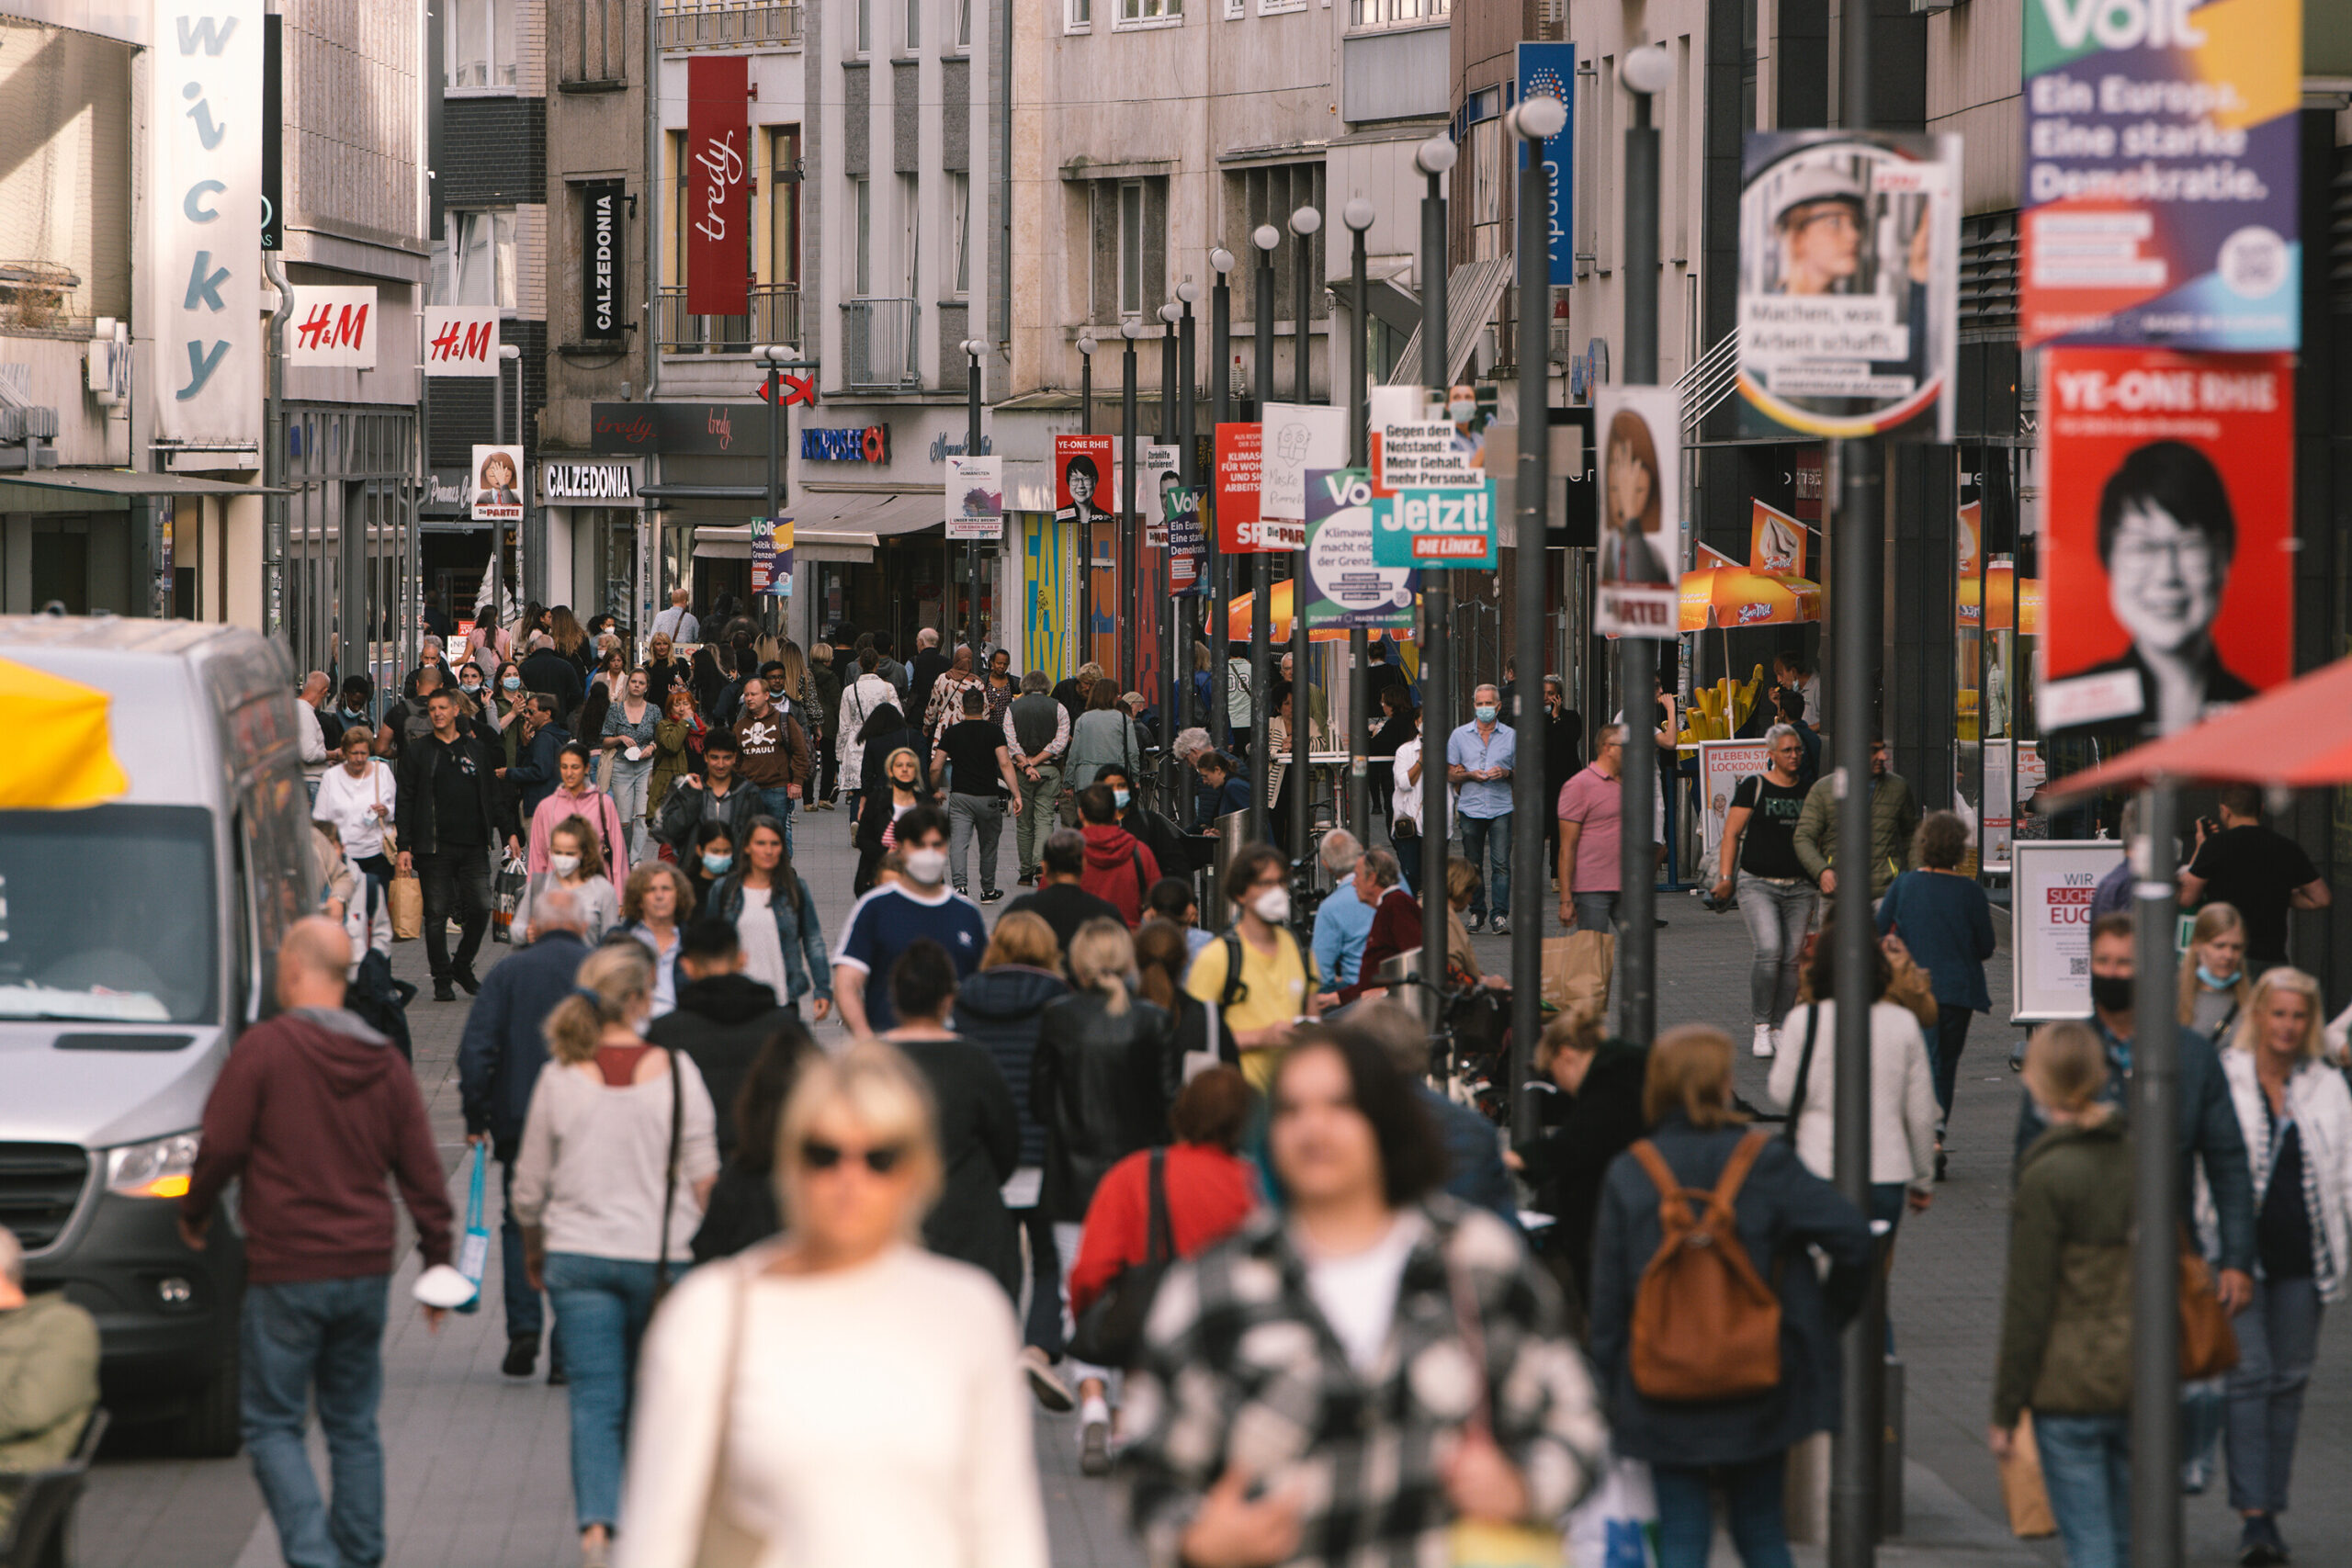 <i>Ying Tang/NurPhoto/Getty Images</i><br/>General view of shopping area in the city center of Aachen